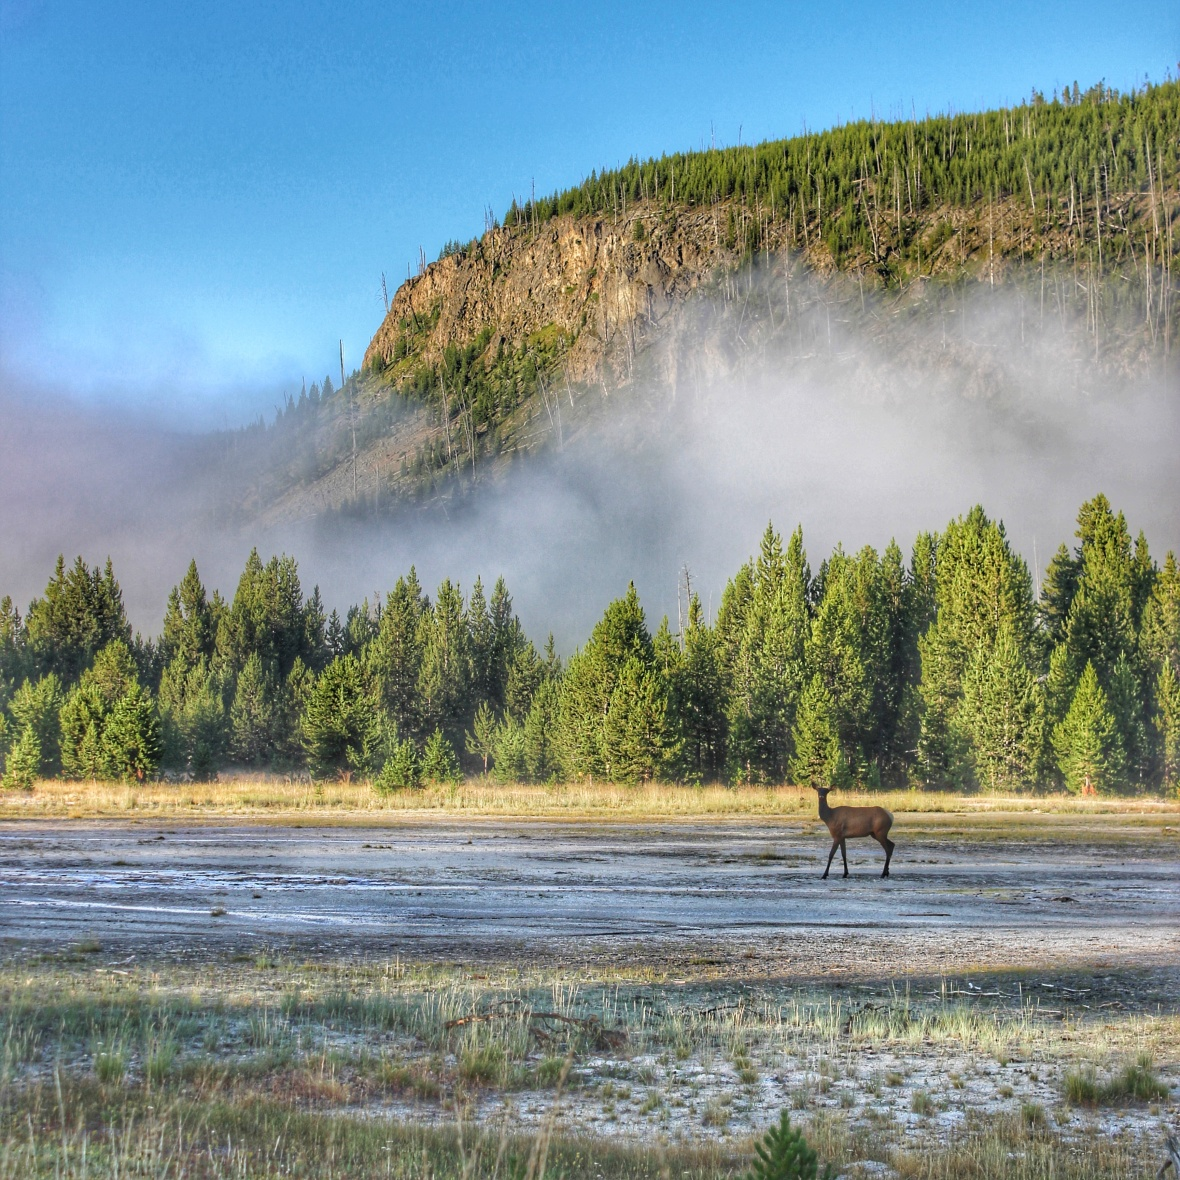 Elk at Yellowstone Park